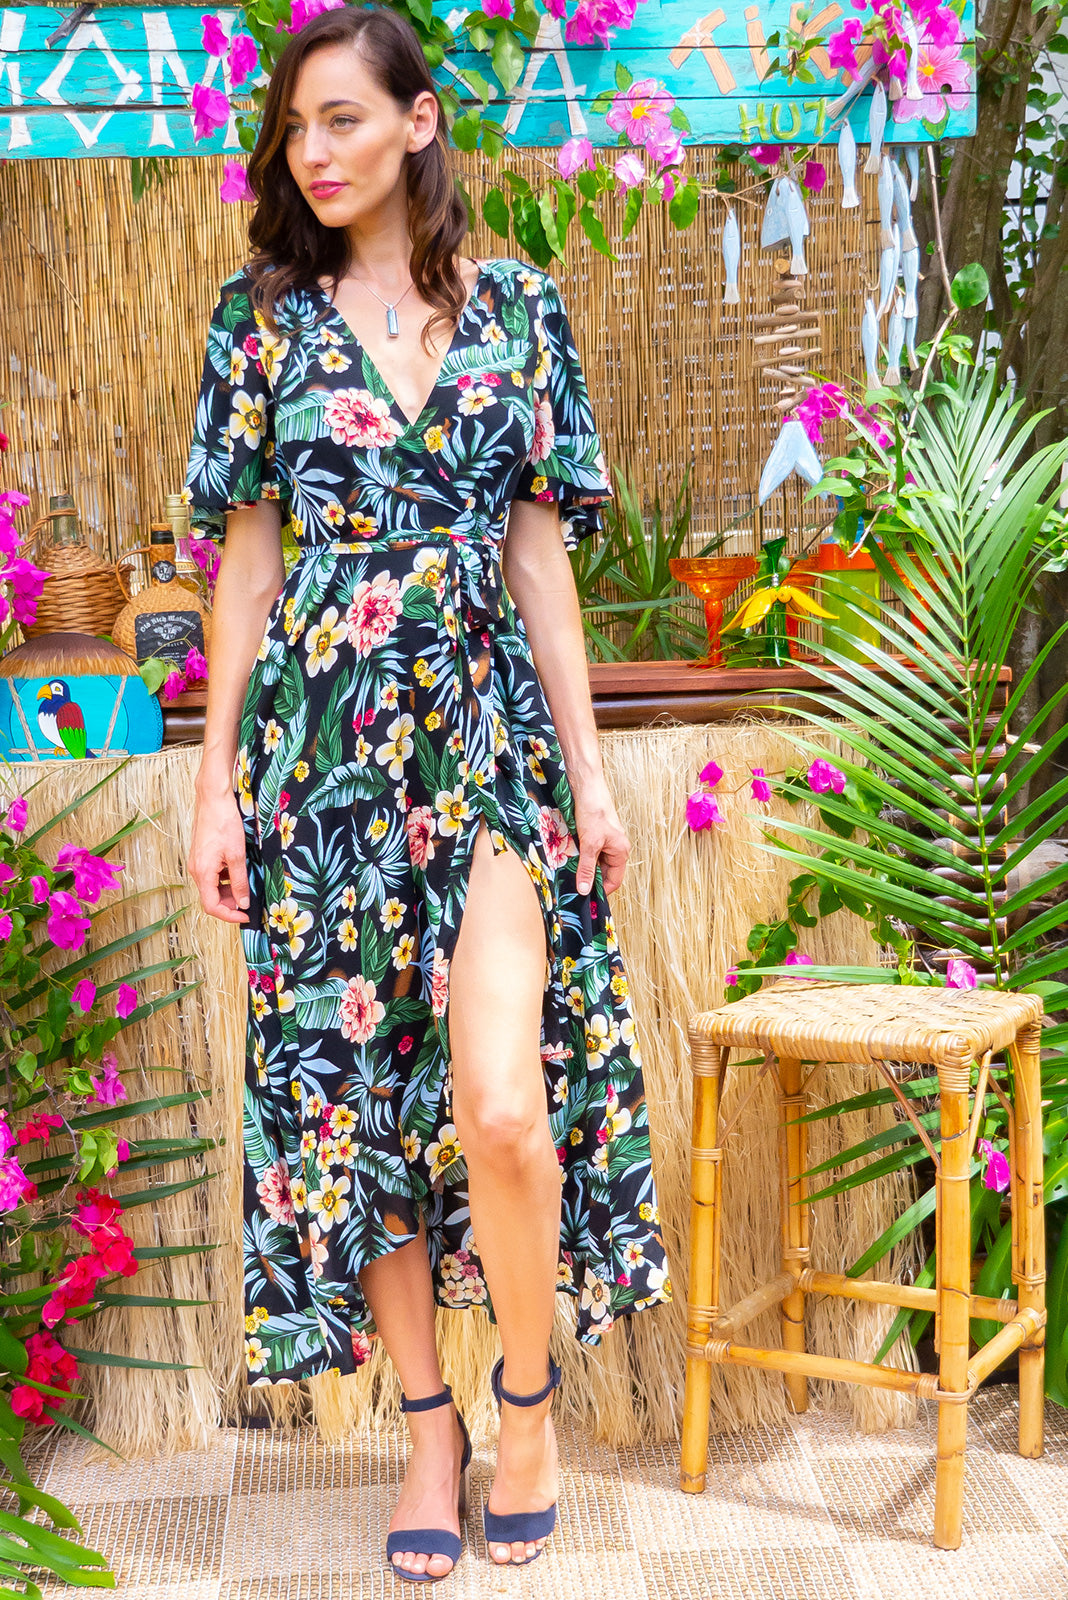 Petal Forest Floral Noir Maxi Wrap dress features a flattering wrap around waist, petal sleeves, and a shorter at the front hemline and comes in a deep black jungle inspired bohemian floral print on rayon